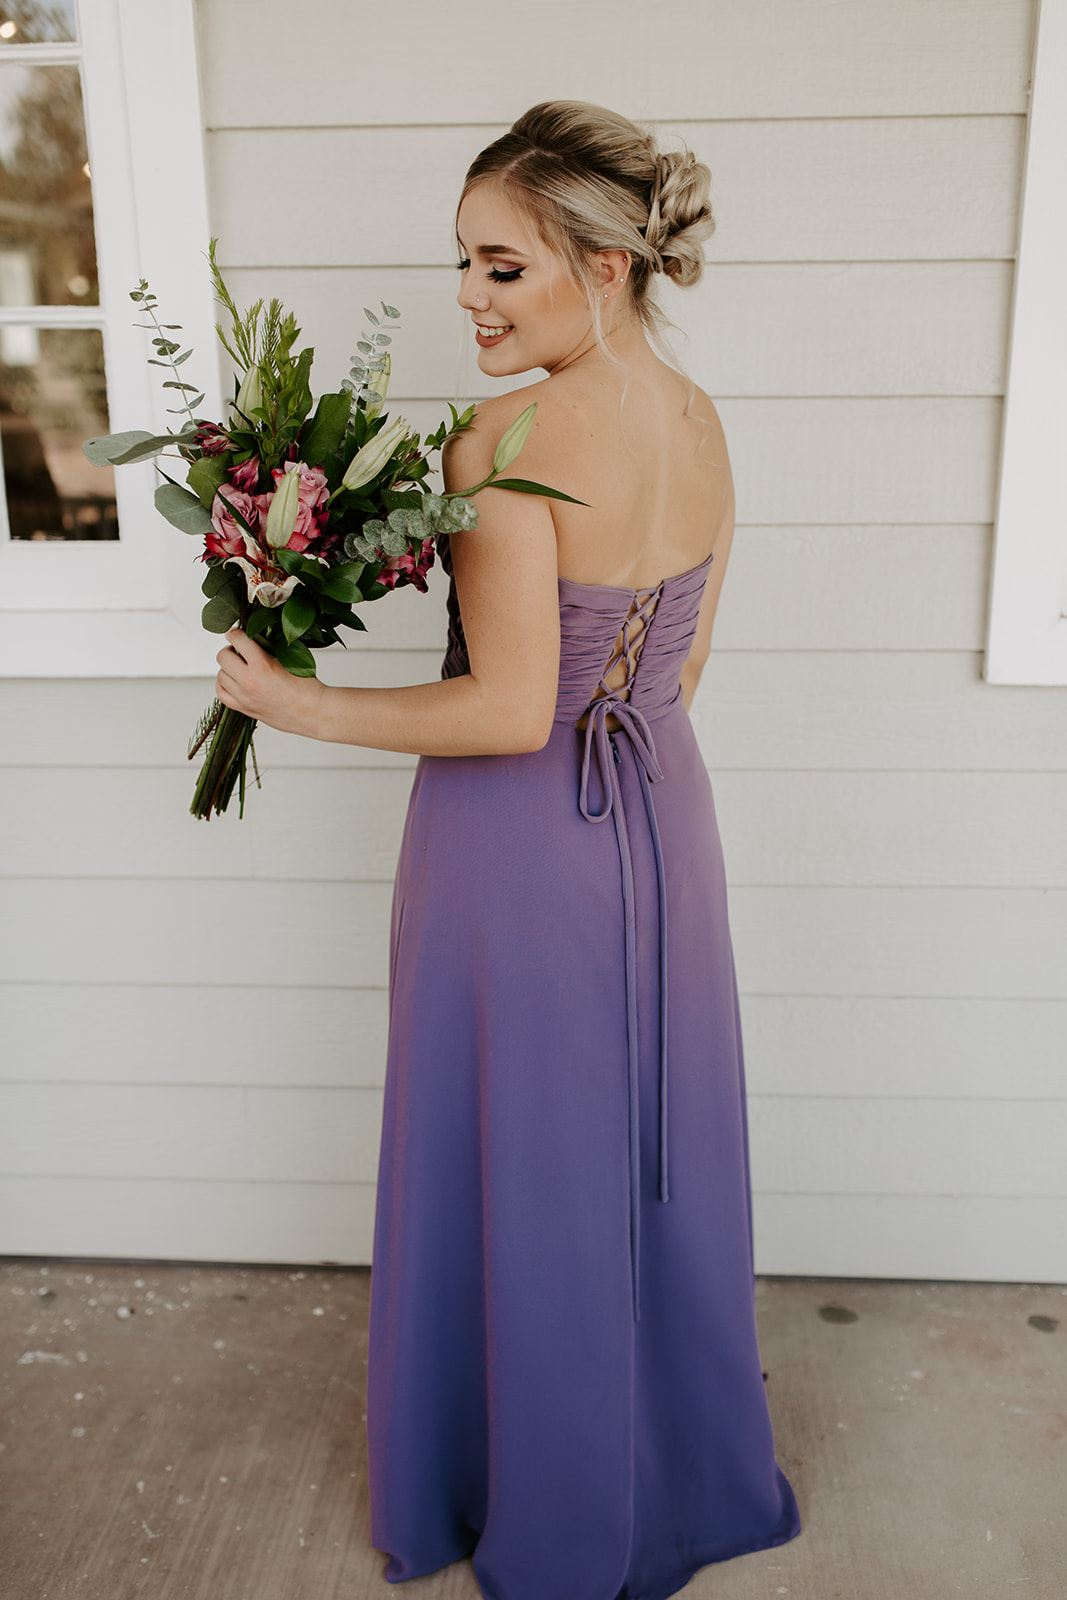 Styled Wedding Shoot with Suzanne's Bridal